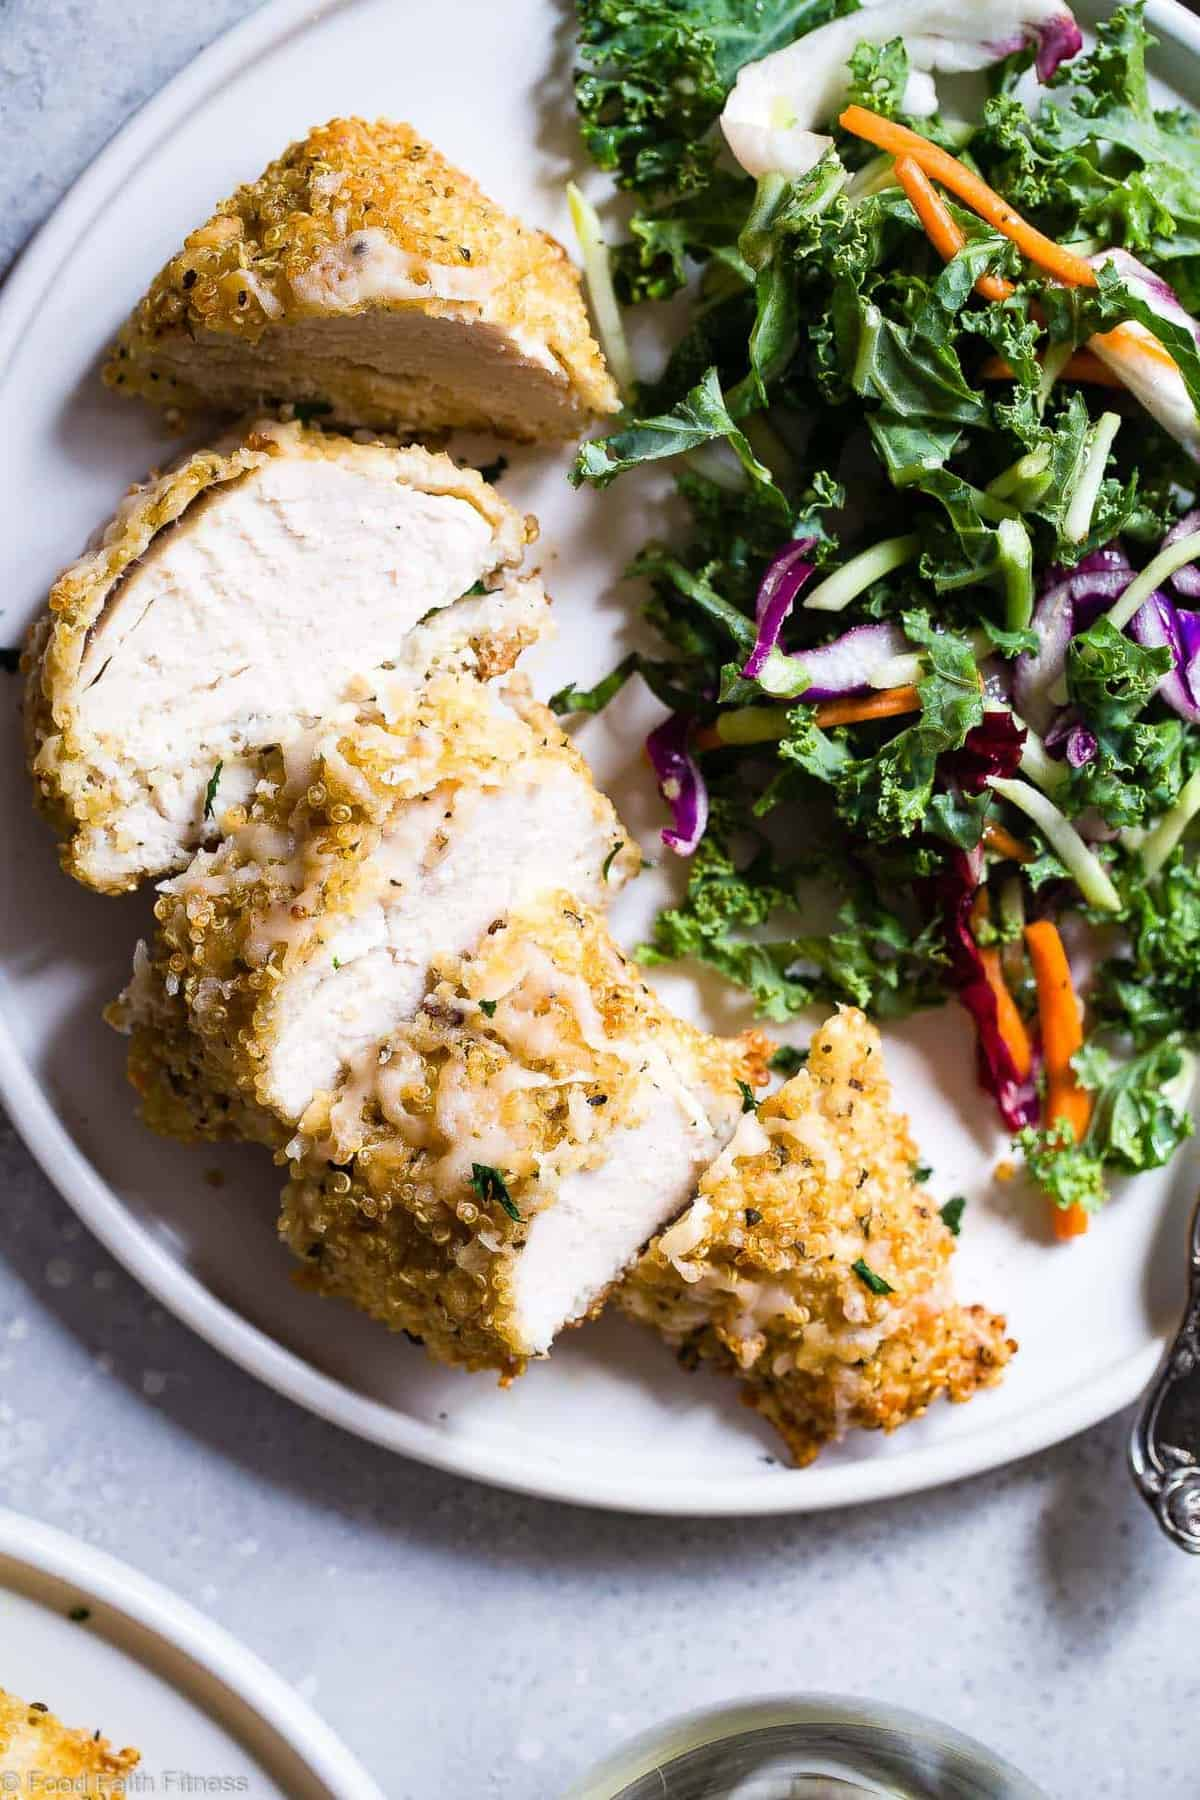 Goat Cheese Quinoa Crusted Chicken - Aquick, healthy and gluten free dinner that feels fancy, but is so easy! A perfect meal for busy weeknights that both kids and adults will love! | #Foodfaithfitness | #Glutenfree #Healthy #Cleaneating #Quinoa #Chickenrecipes